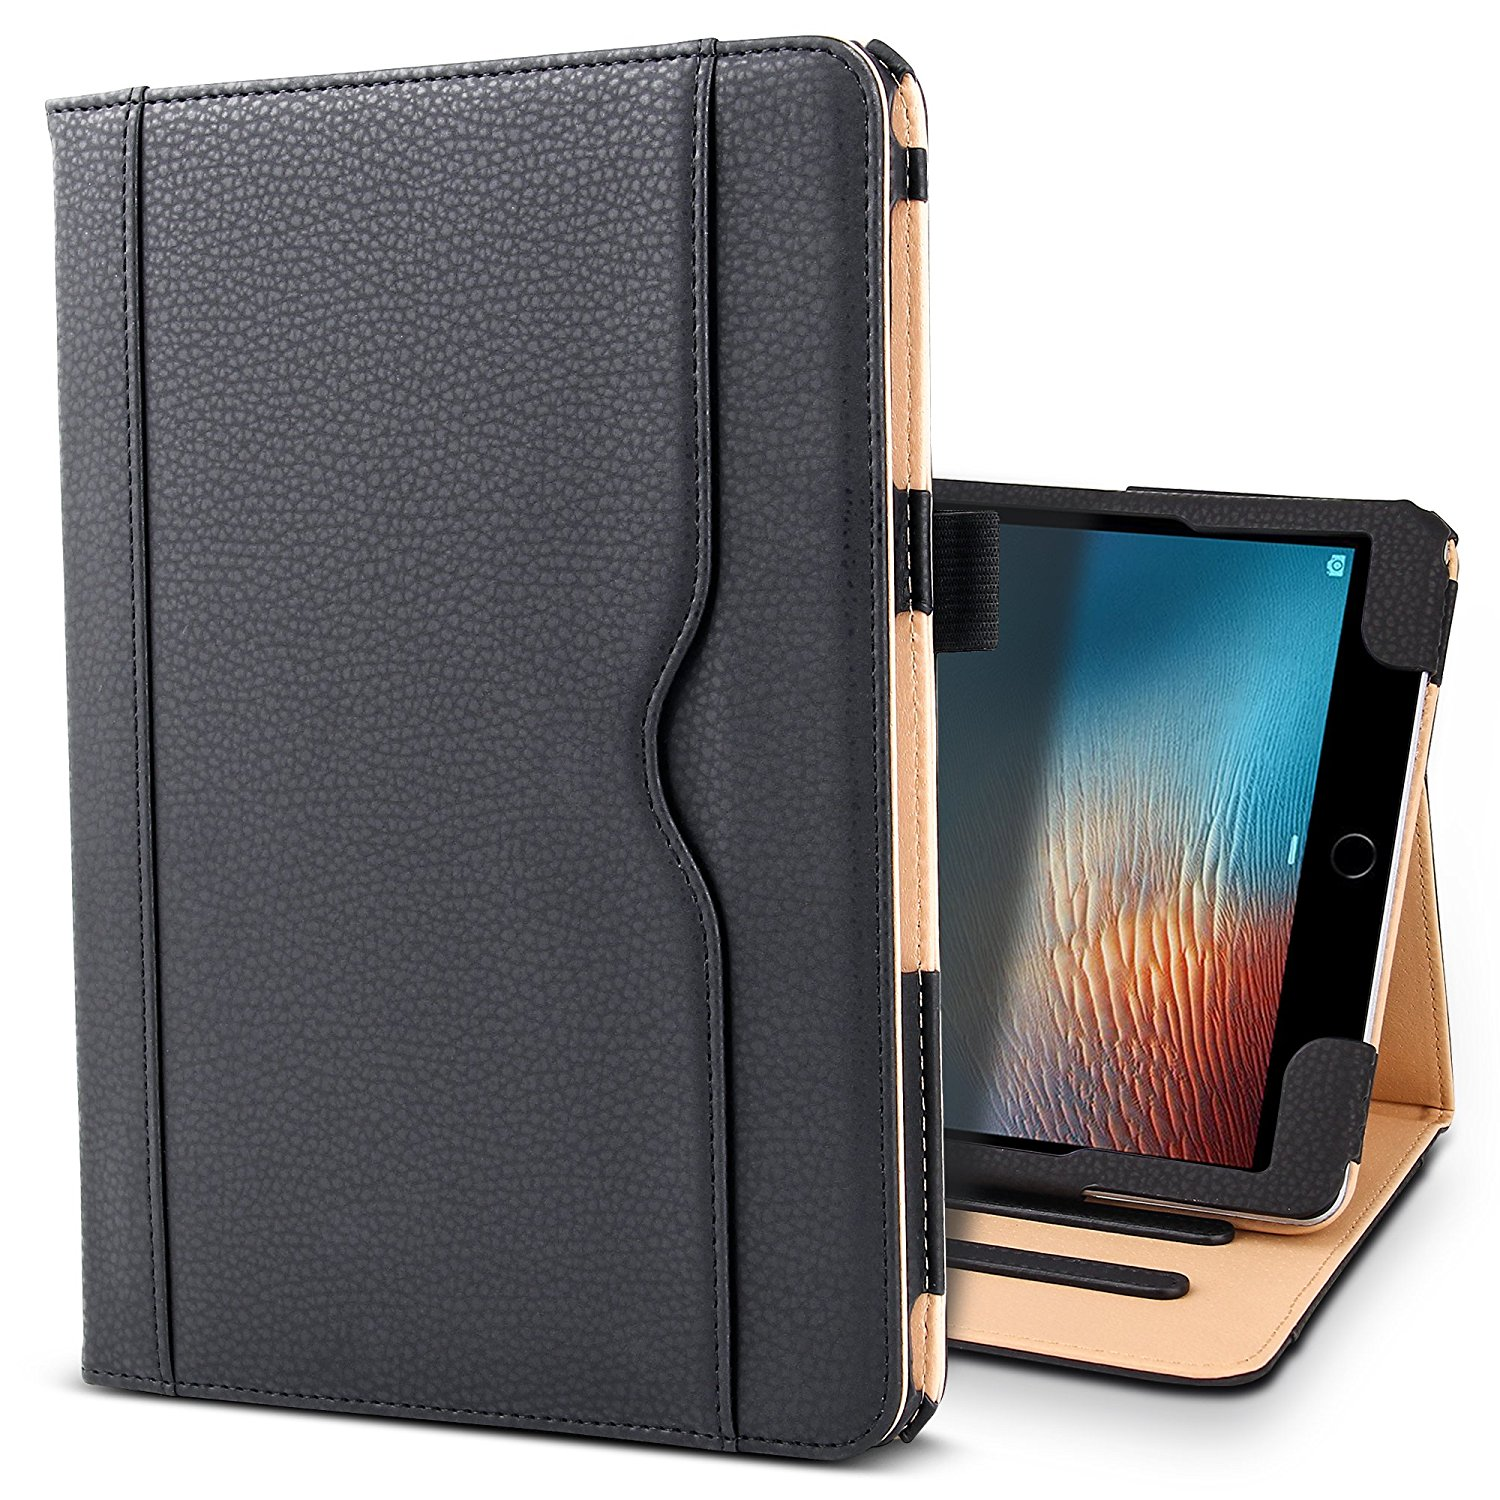 Case For New iPad Pro 10.5 2017 Premium PU Leather Case Smart Cover for iPad pro 10.5 Stand Case with Pencil Holder+Card Pocket new painting case for apple ipad pro 12 9 flip pu leather case tablet smart slim cover book style stand with wallet card bag